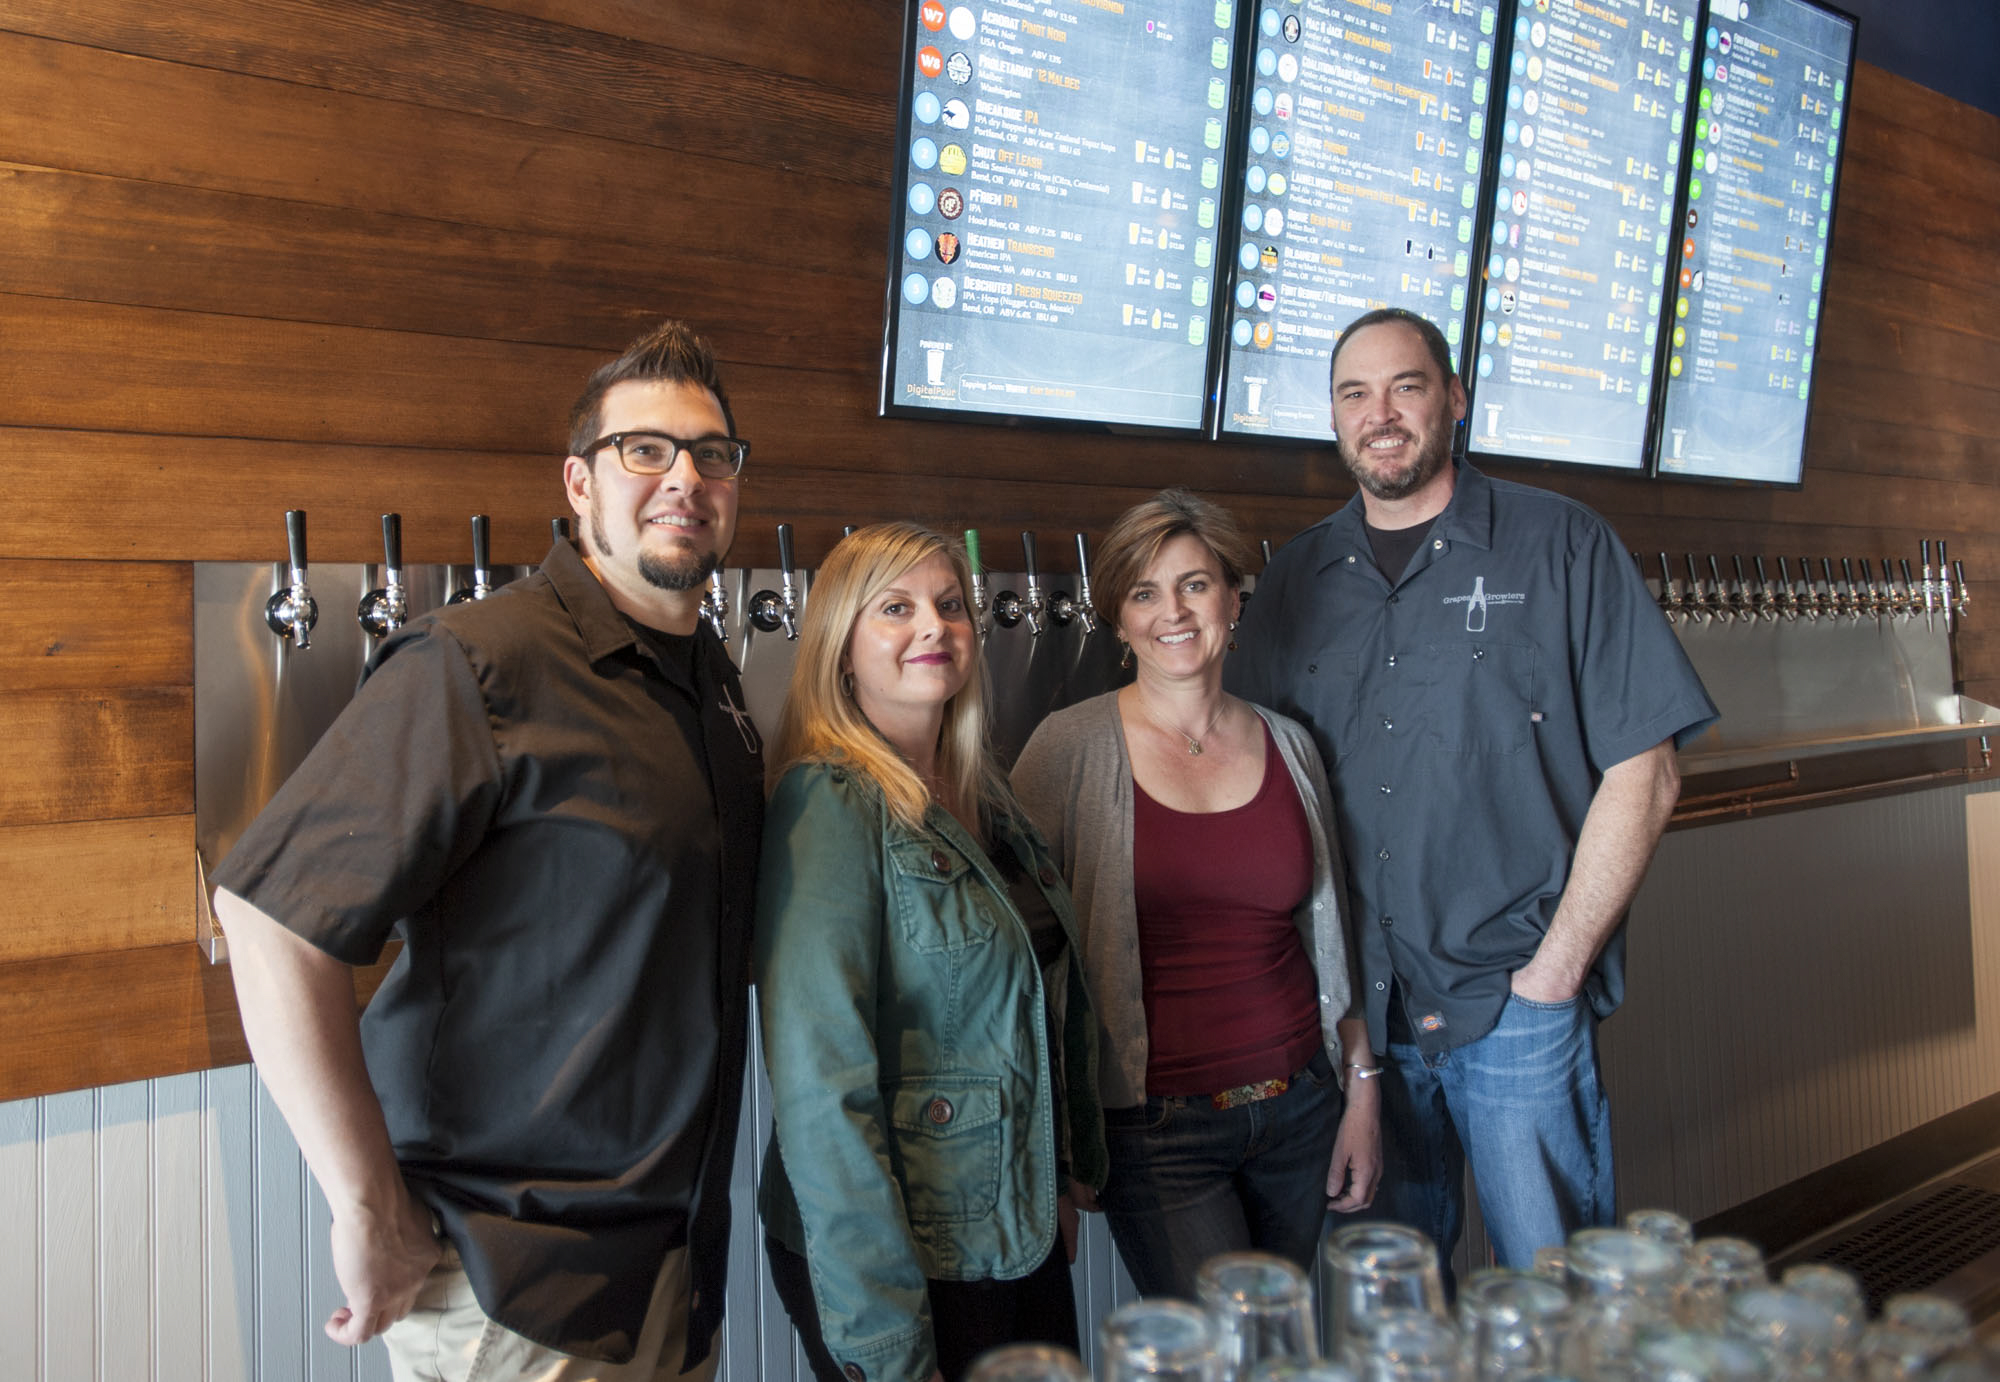 Owners of the recently-opened Vancouver tap room Grapes 'n Growlers (L to R) Ashley Cahoon, Amanda Barnett Cahoon, Paige Mahoney, and Tom Mahoney. (Natalie Behring/The Columbian)